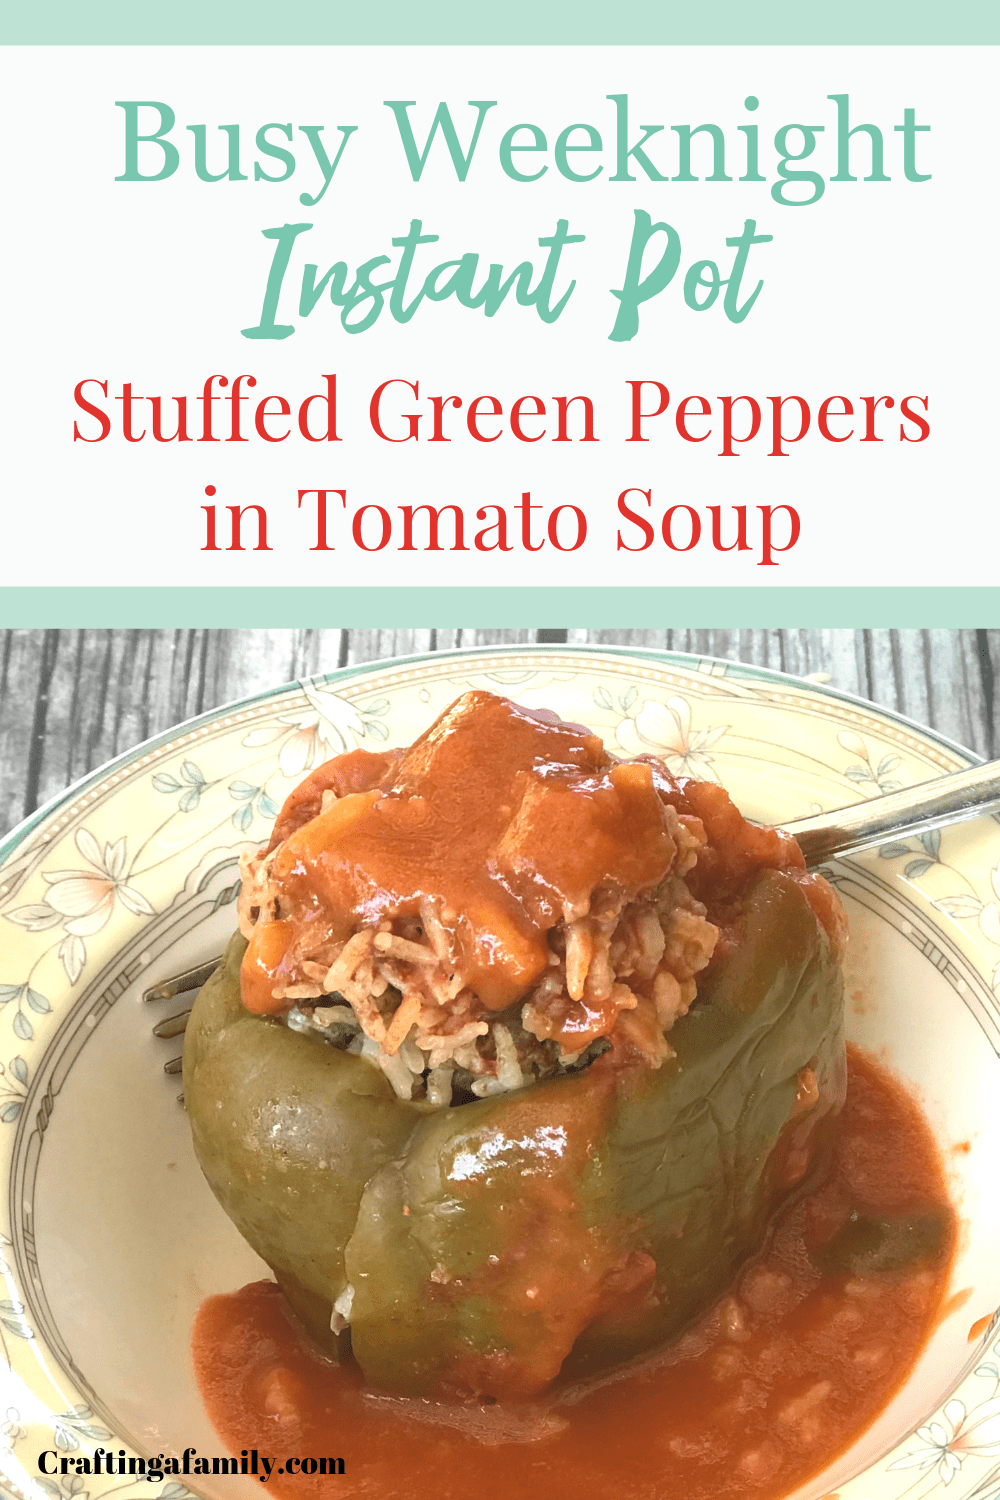 Simmering Stuffed Green Peppers Fresh From The Garden Has Been A Tradition In Our Italian Side Stuffed Green Peppers Stuffed Peppers Dinner Recipes Easy Quick